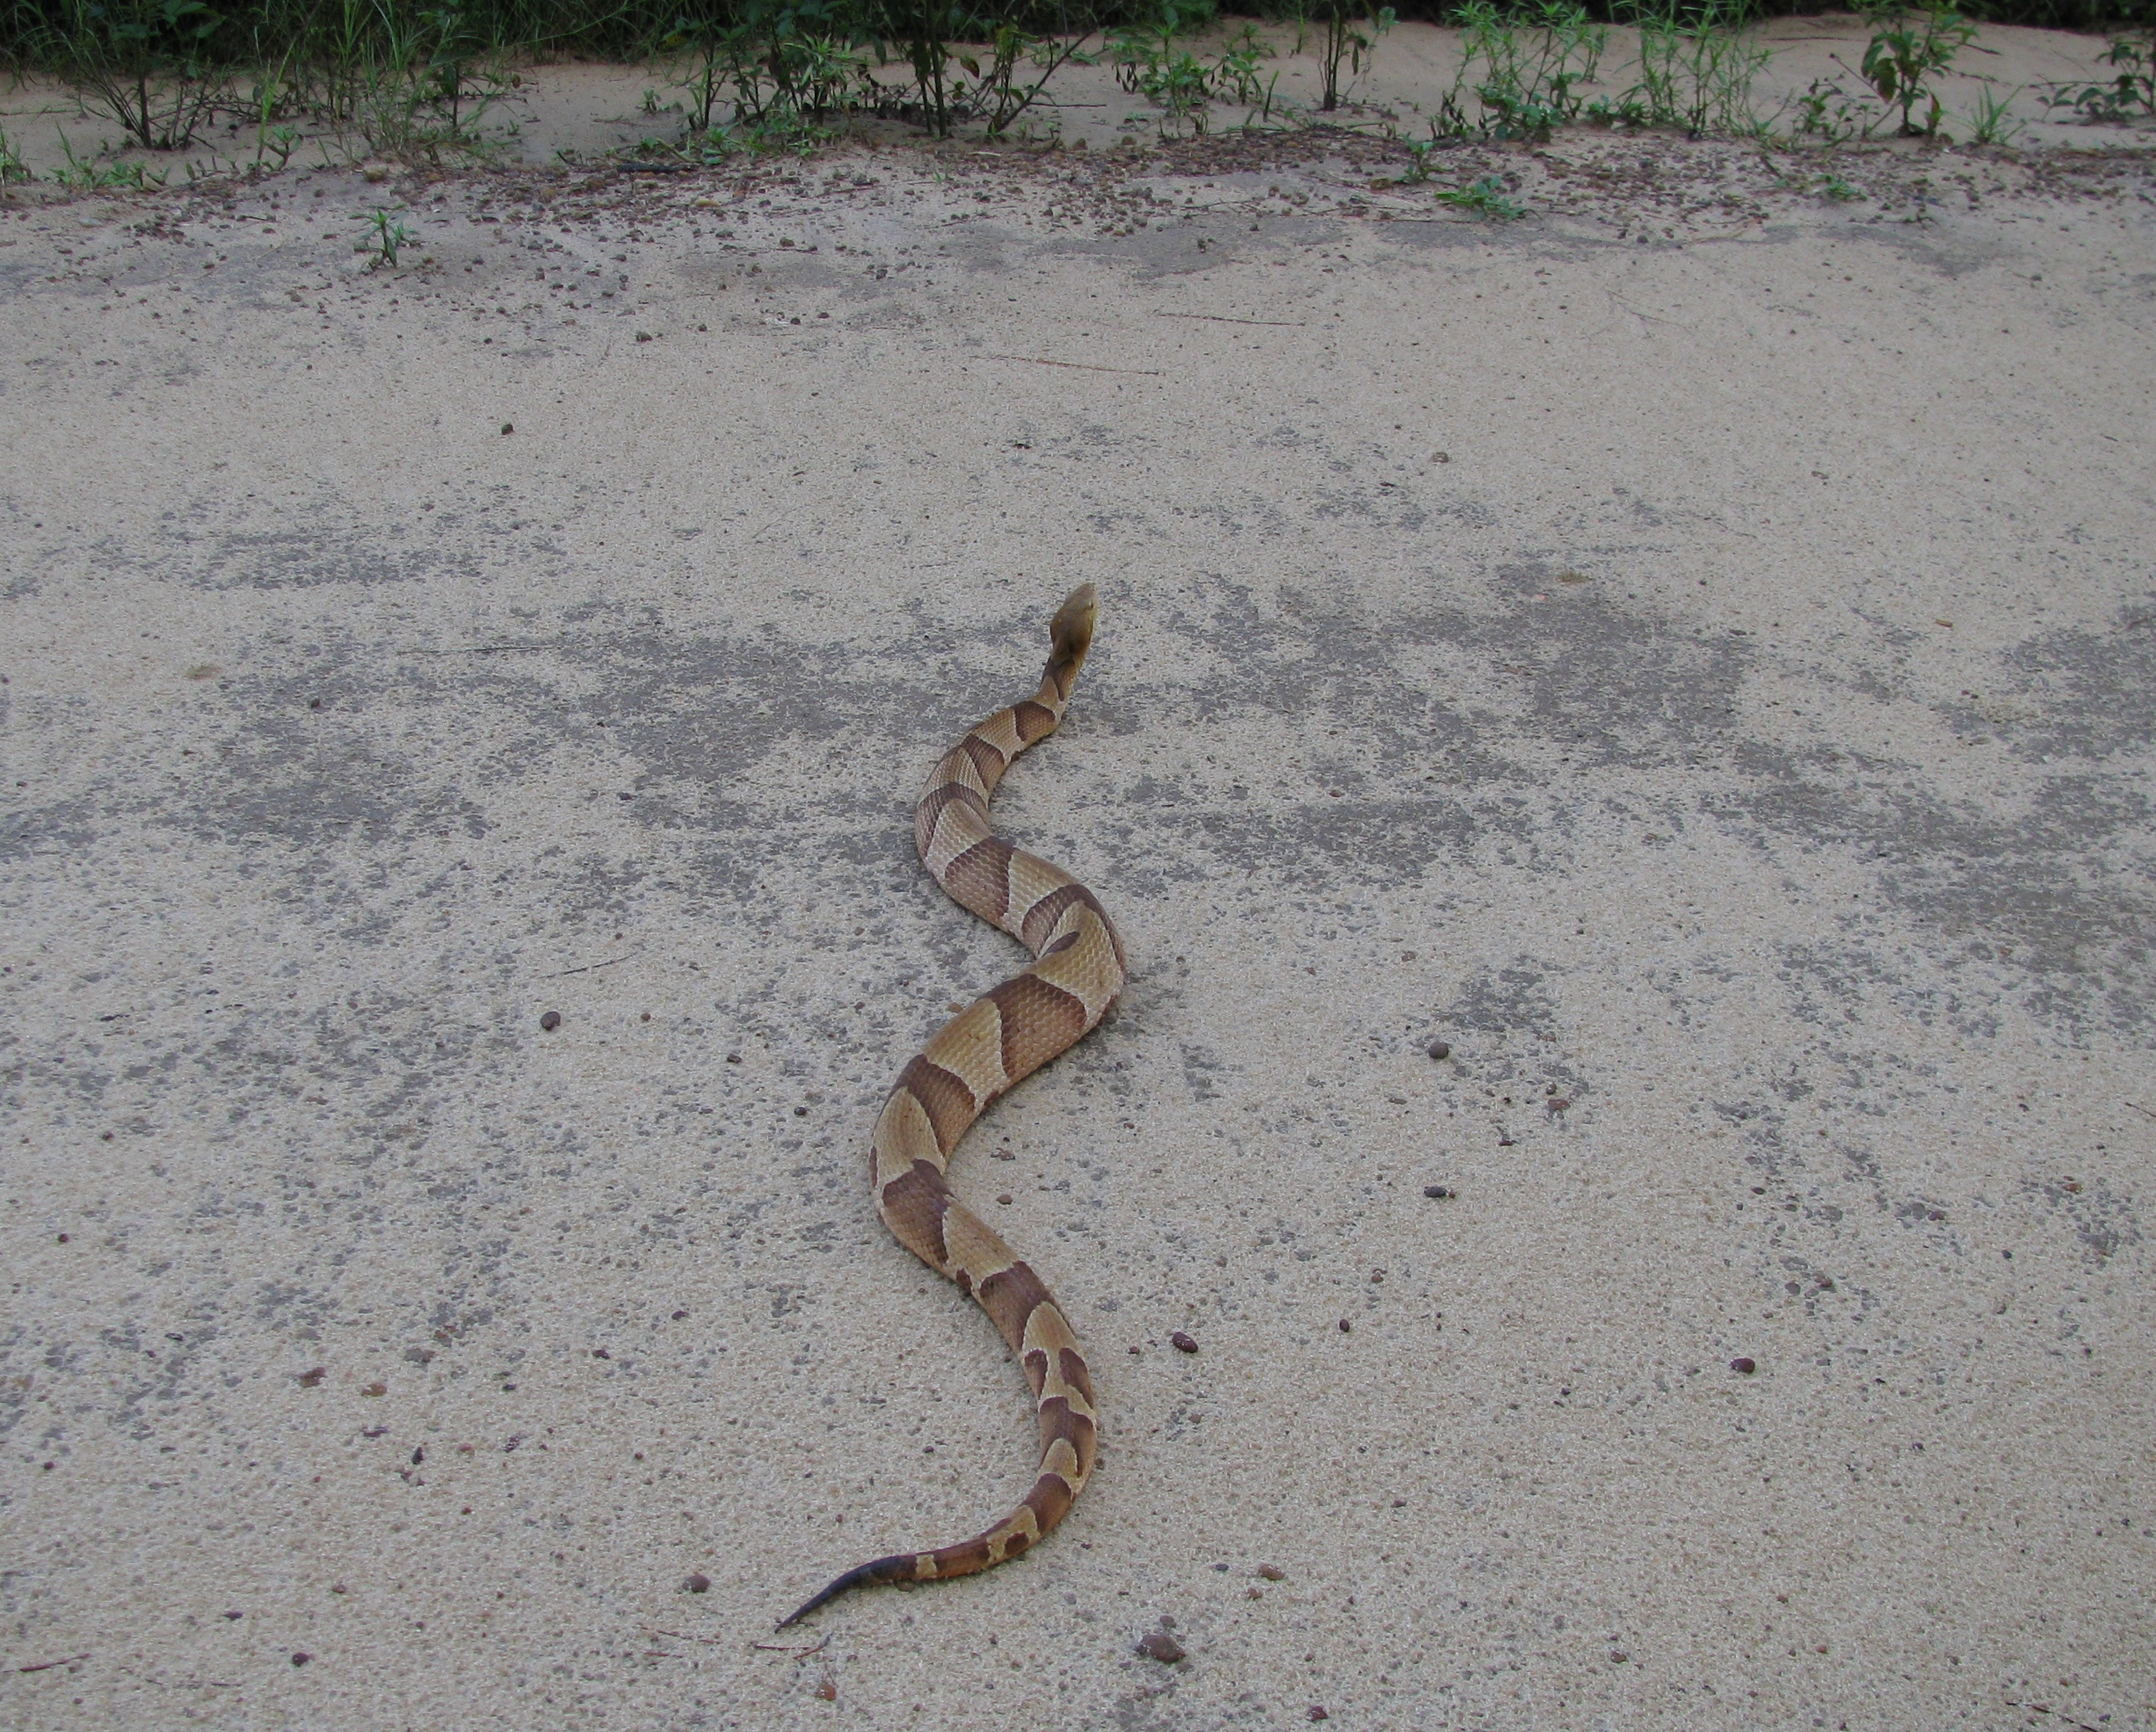 Snakes of the Florida Panhandle:  Southern Copperhead